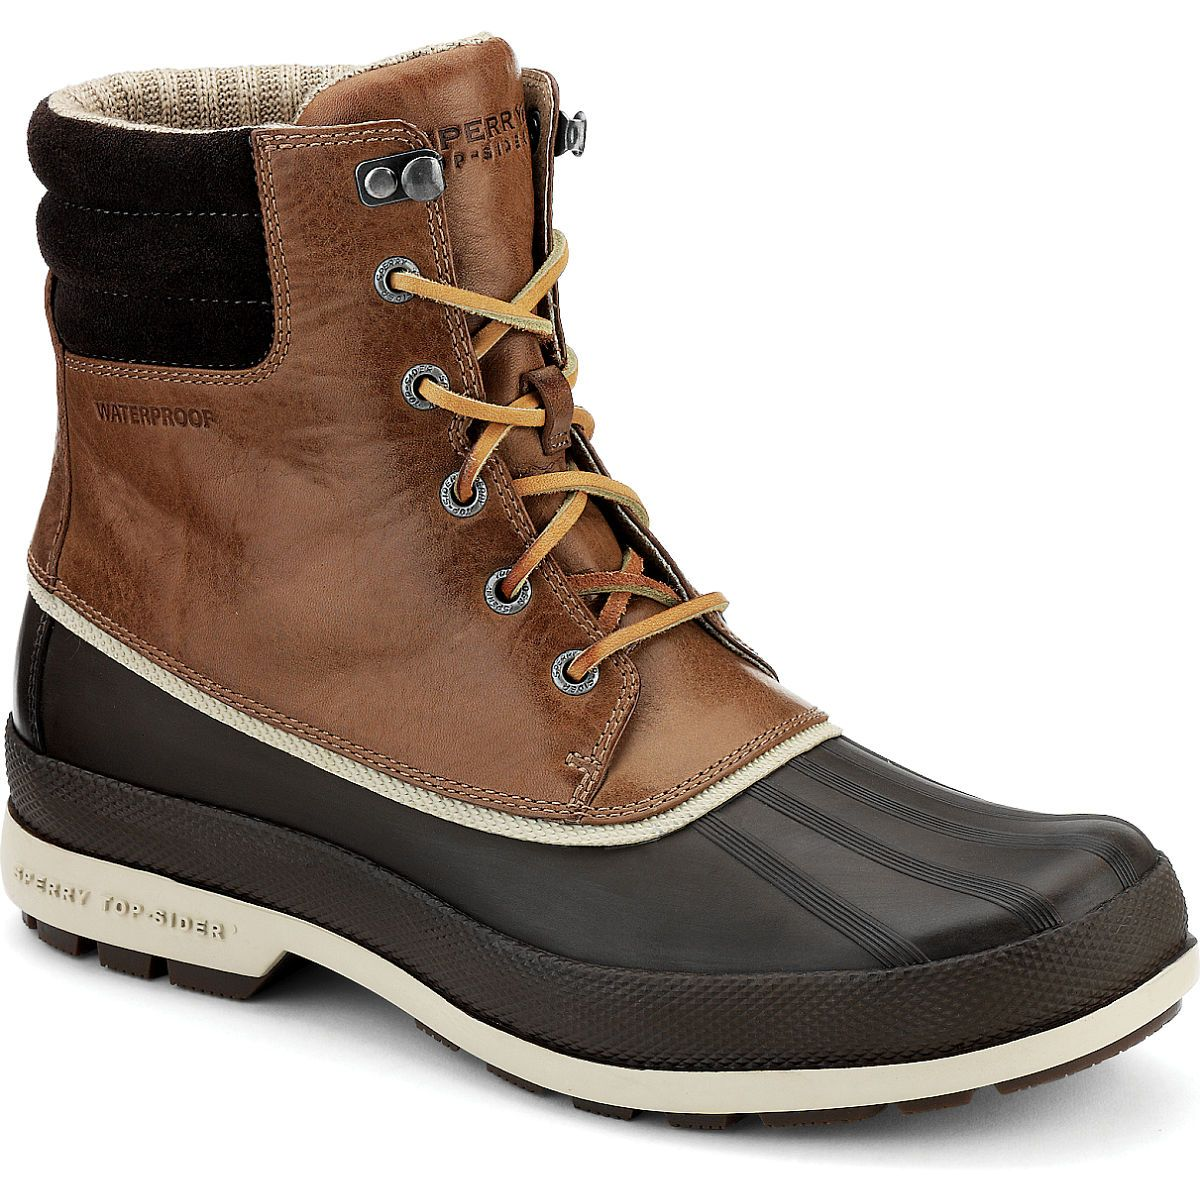 Men's Cold Bay Boot - Boots & Chukkas | Sperry Top-Sider | Skiing ...